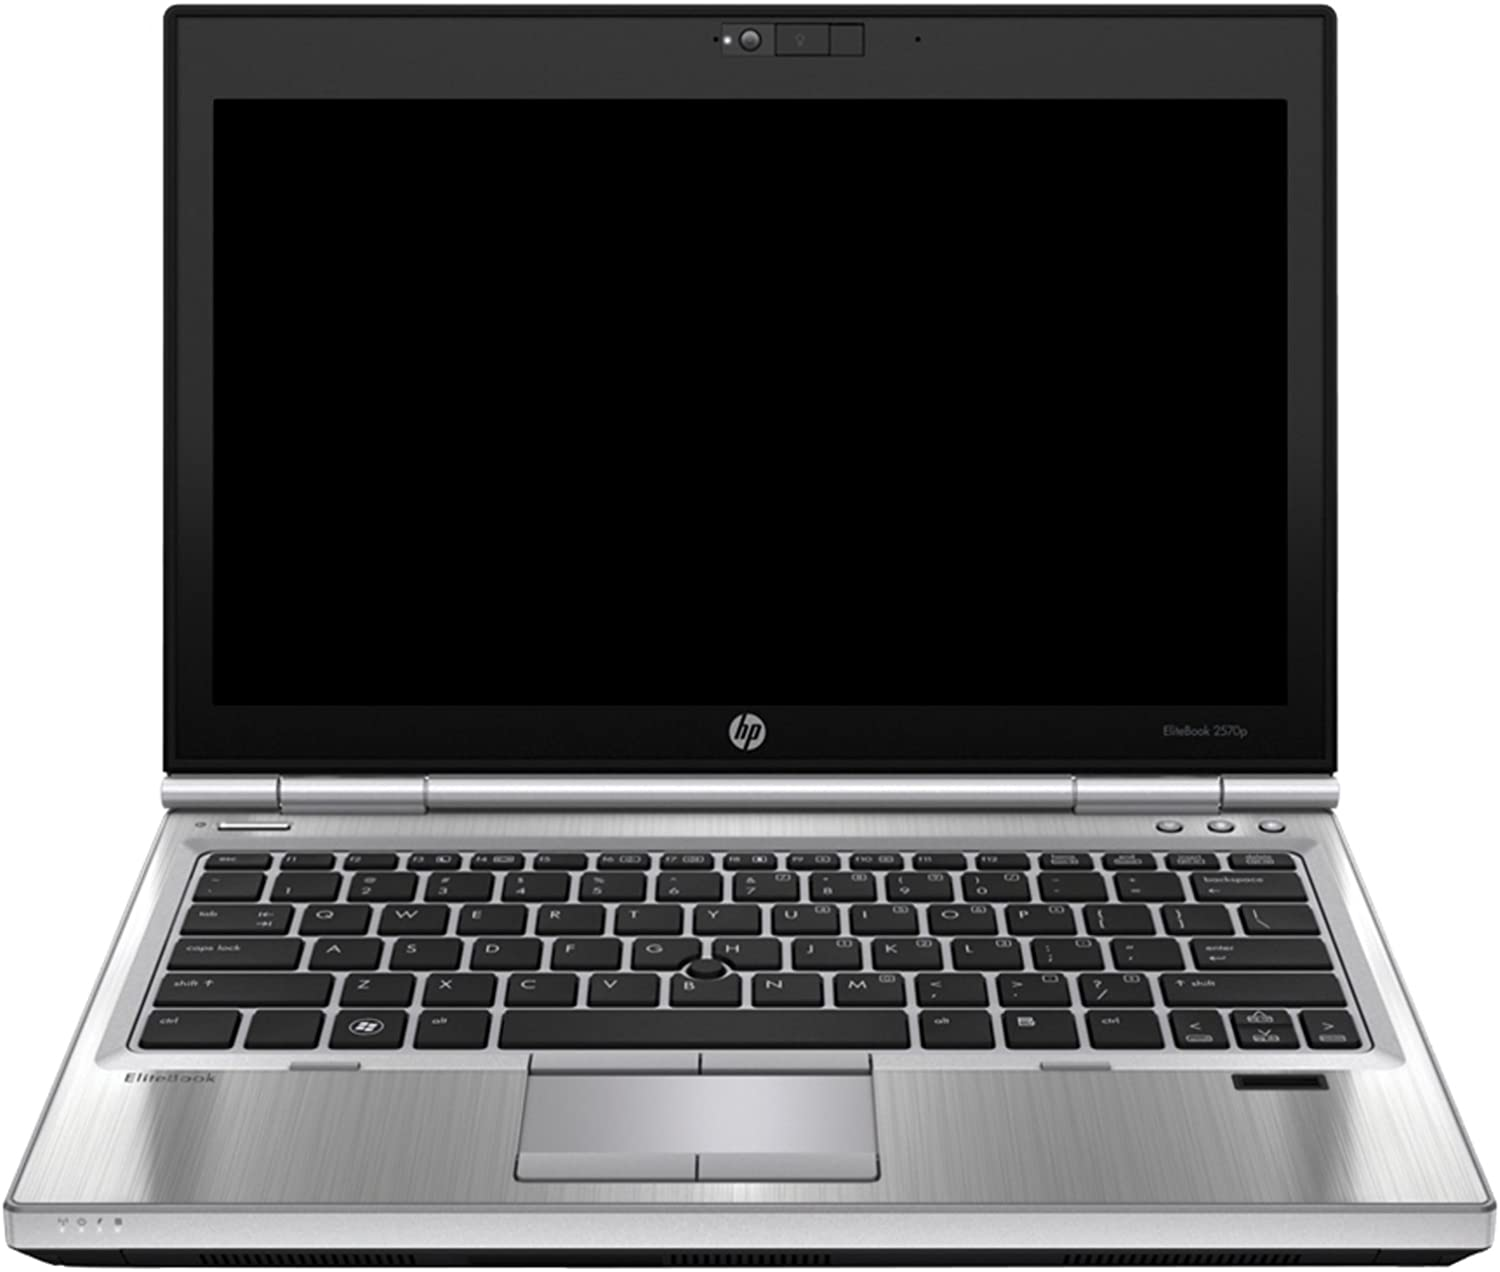 HP EliteBook 2570p 12in Notebook PC - Intel Core i5-3320M 2.6GHz 8GB 250GB Windows 10 Professional (Renewed)